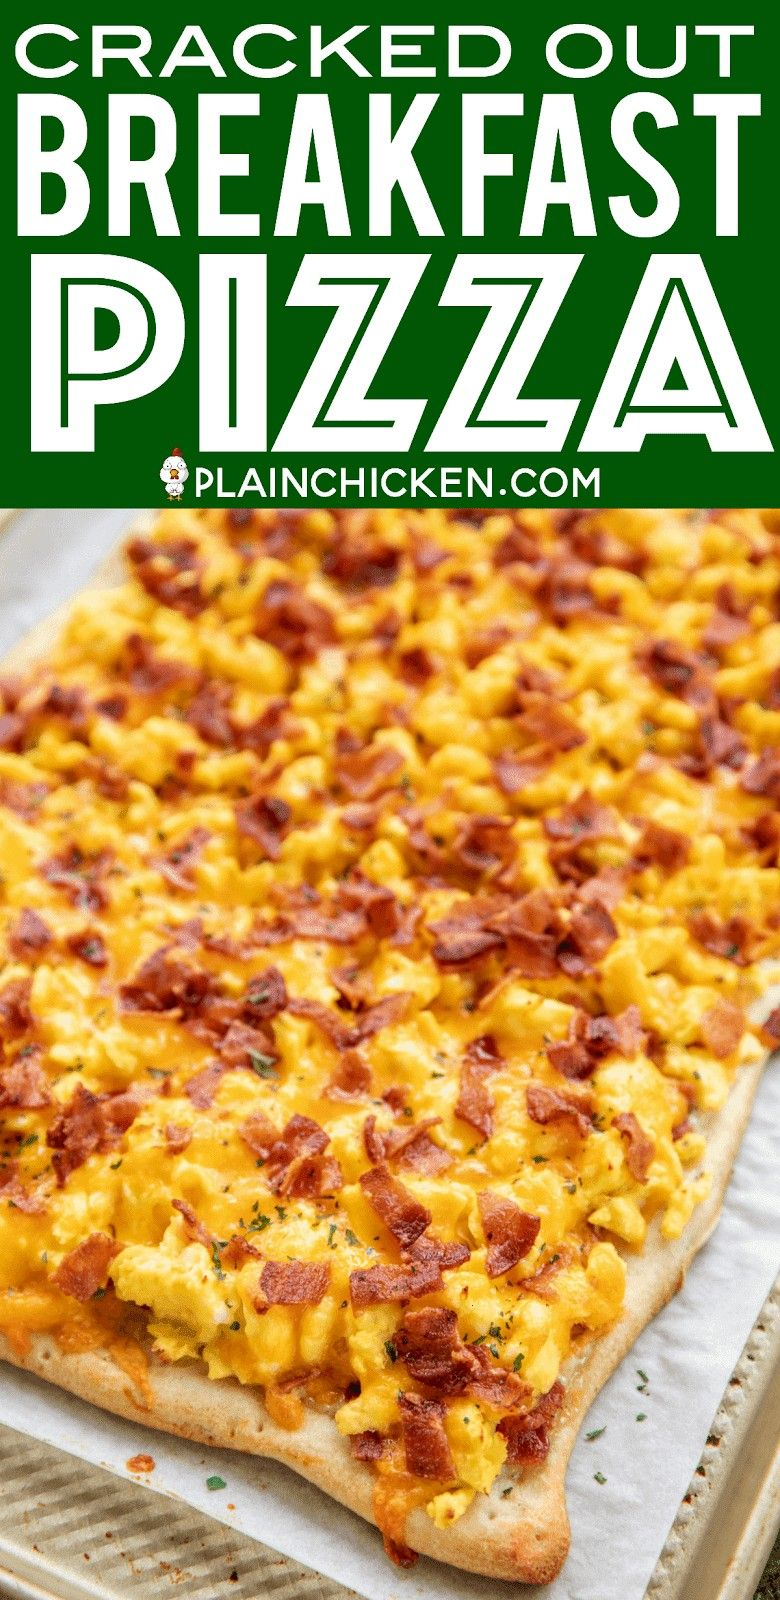 Out Breakfast Pizza  loaded with cheddar bacon and Ranch SO GOOD Easy enough for a weekday breakfast Refrigerated pizza crust topped with ranch dressing scrambled eggs ba...